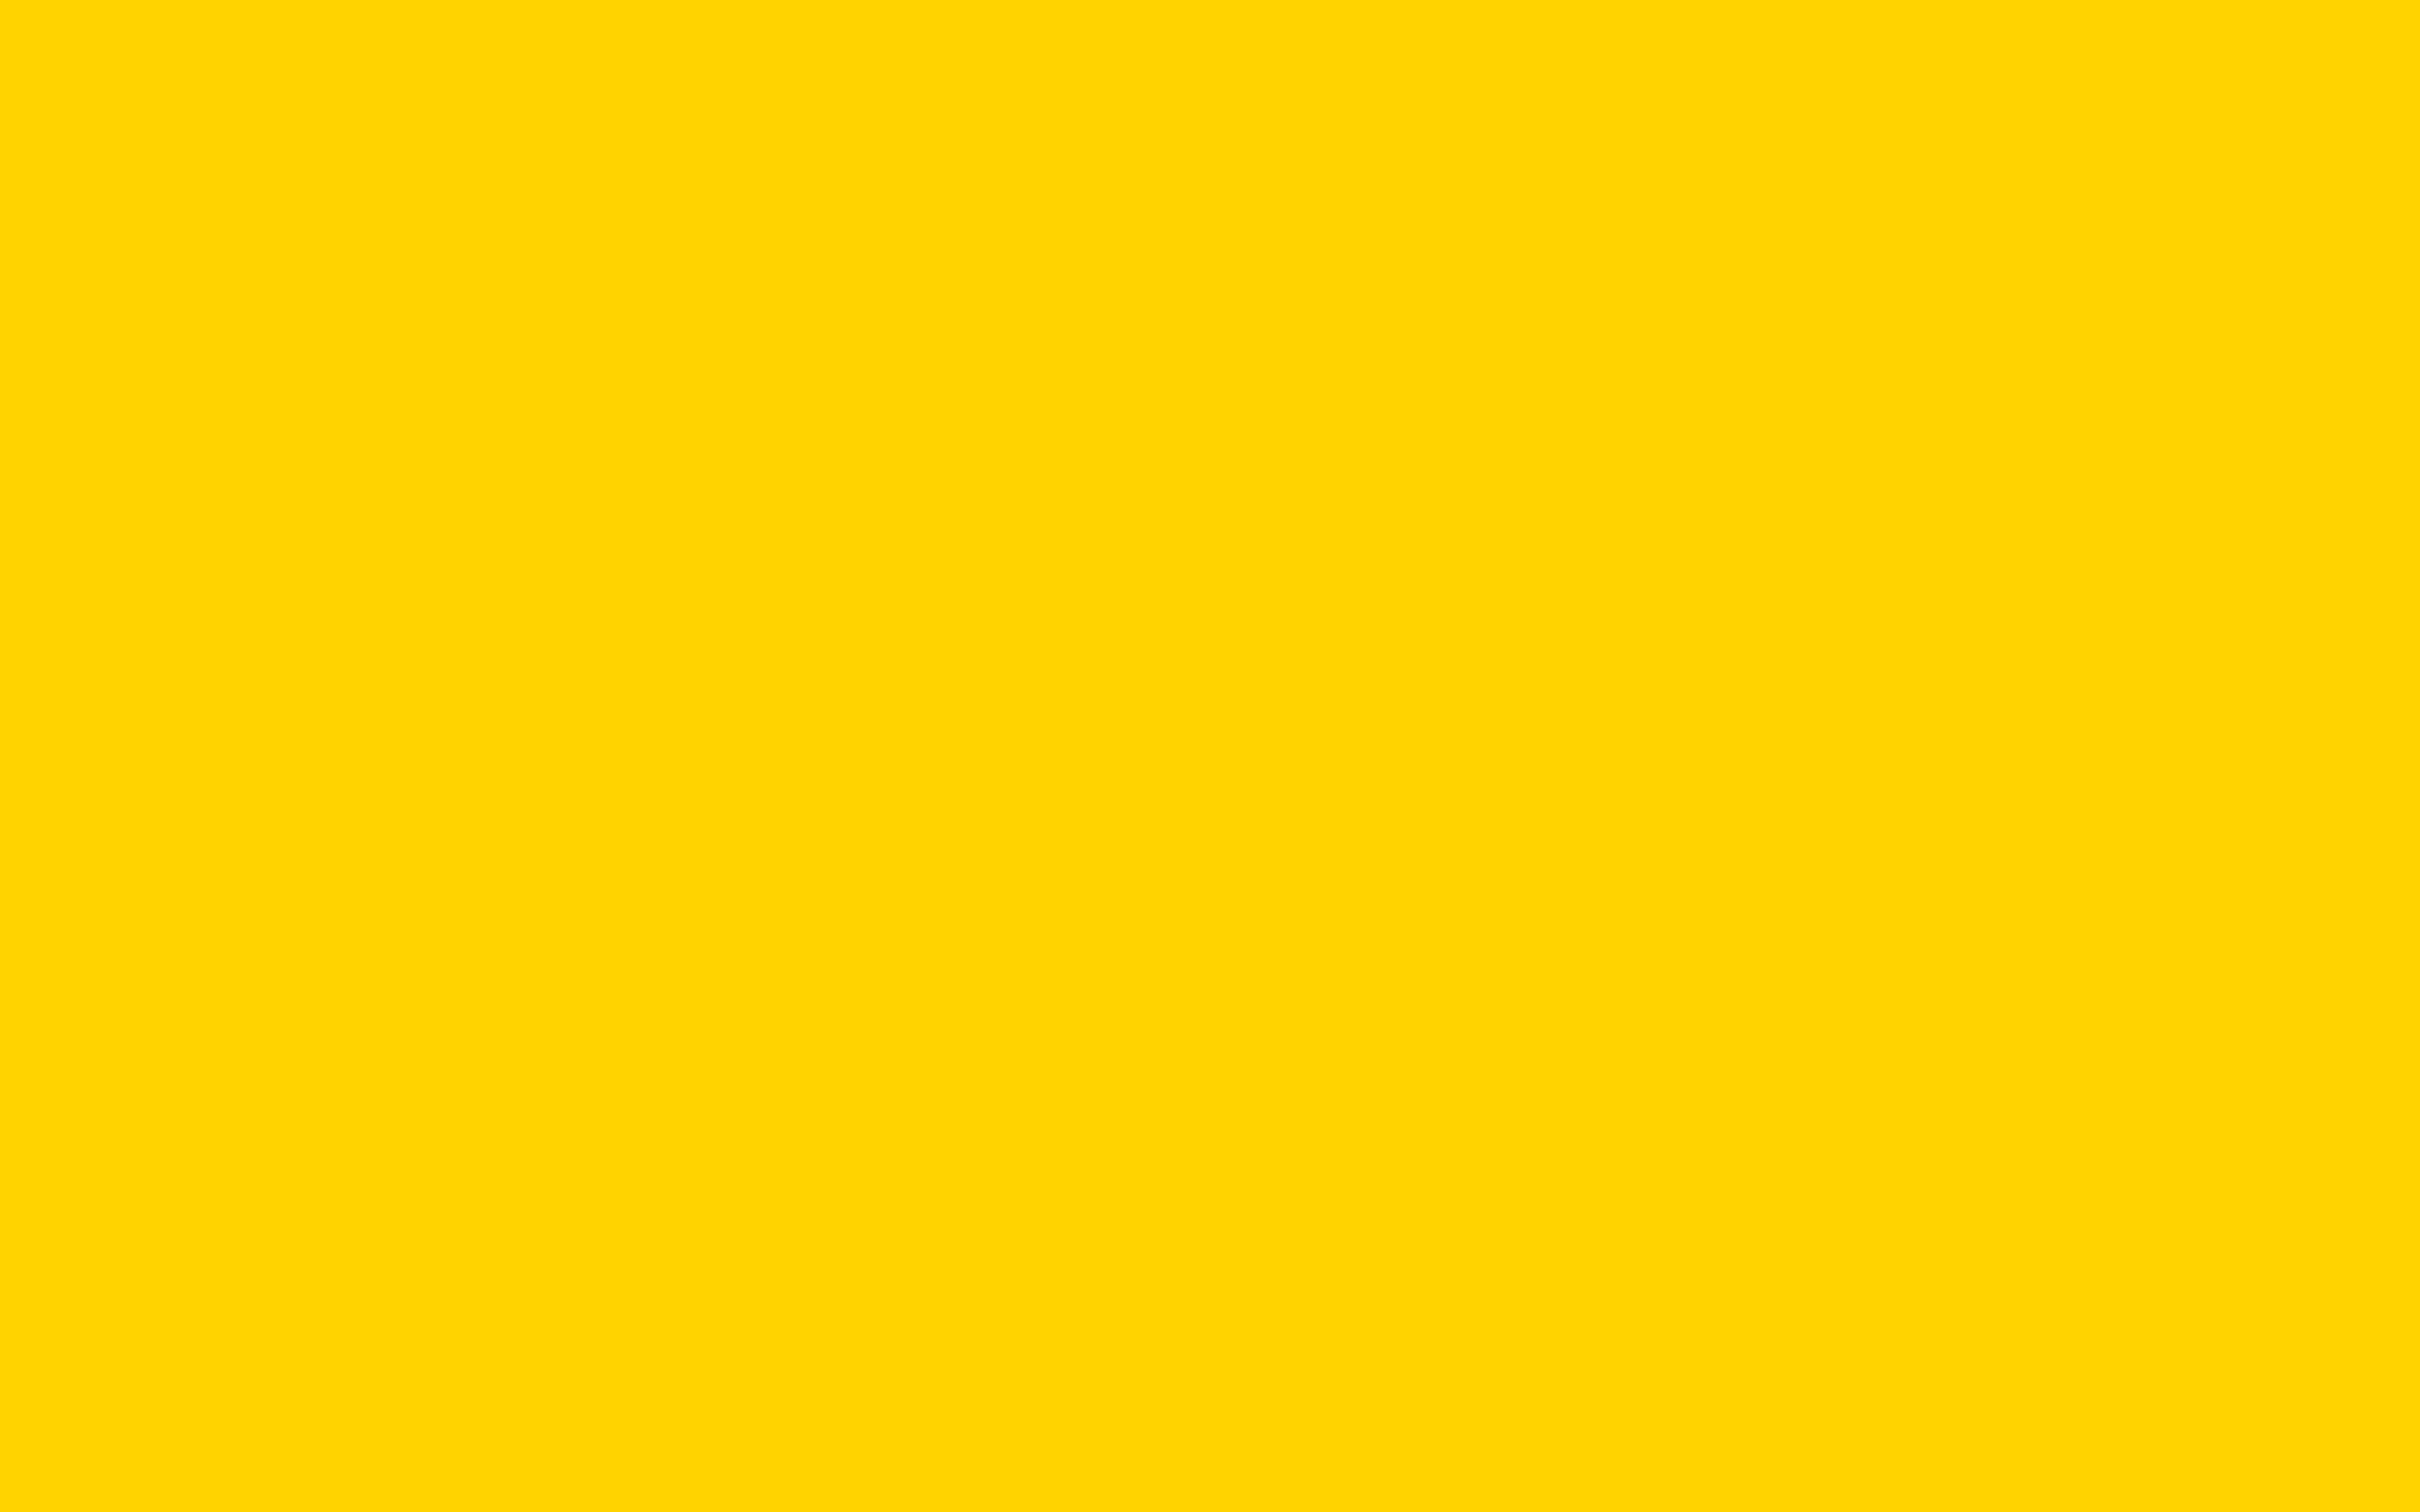 2560x1600 Yellow NCS Solid Color Background